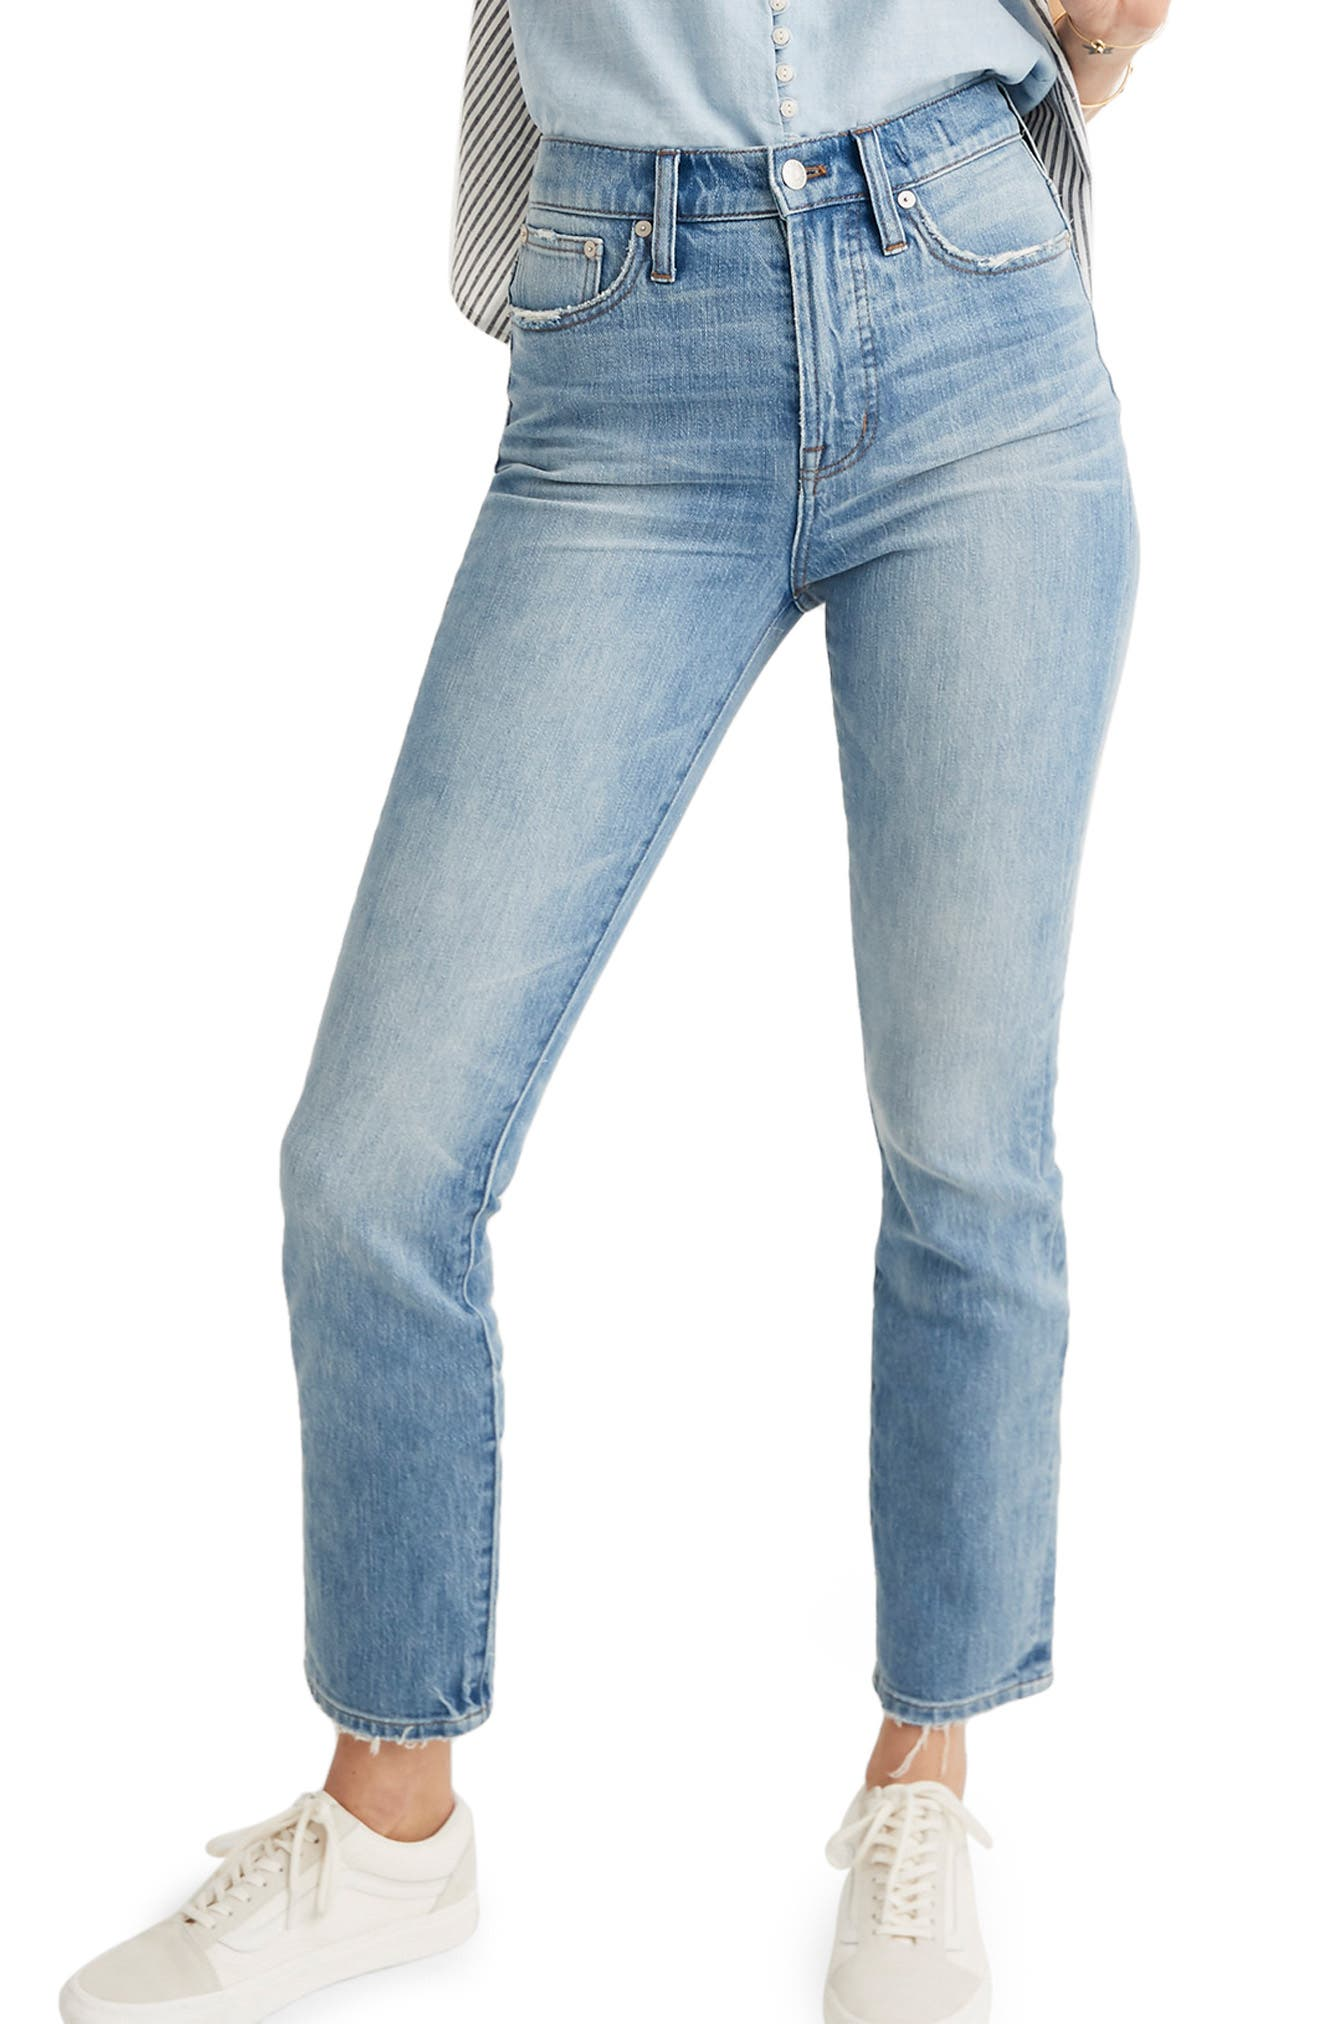 MADEWELL, The Perfect Vintage Heart Patch High Waist Jeans, Main thumbnail 1, color, ATWATER WASH